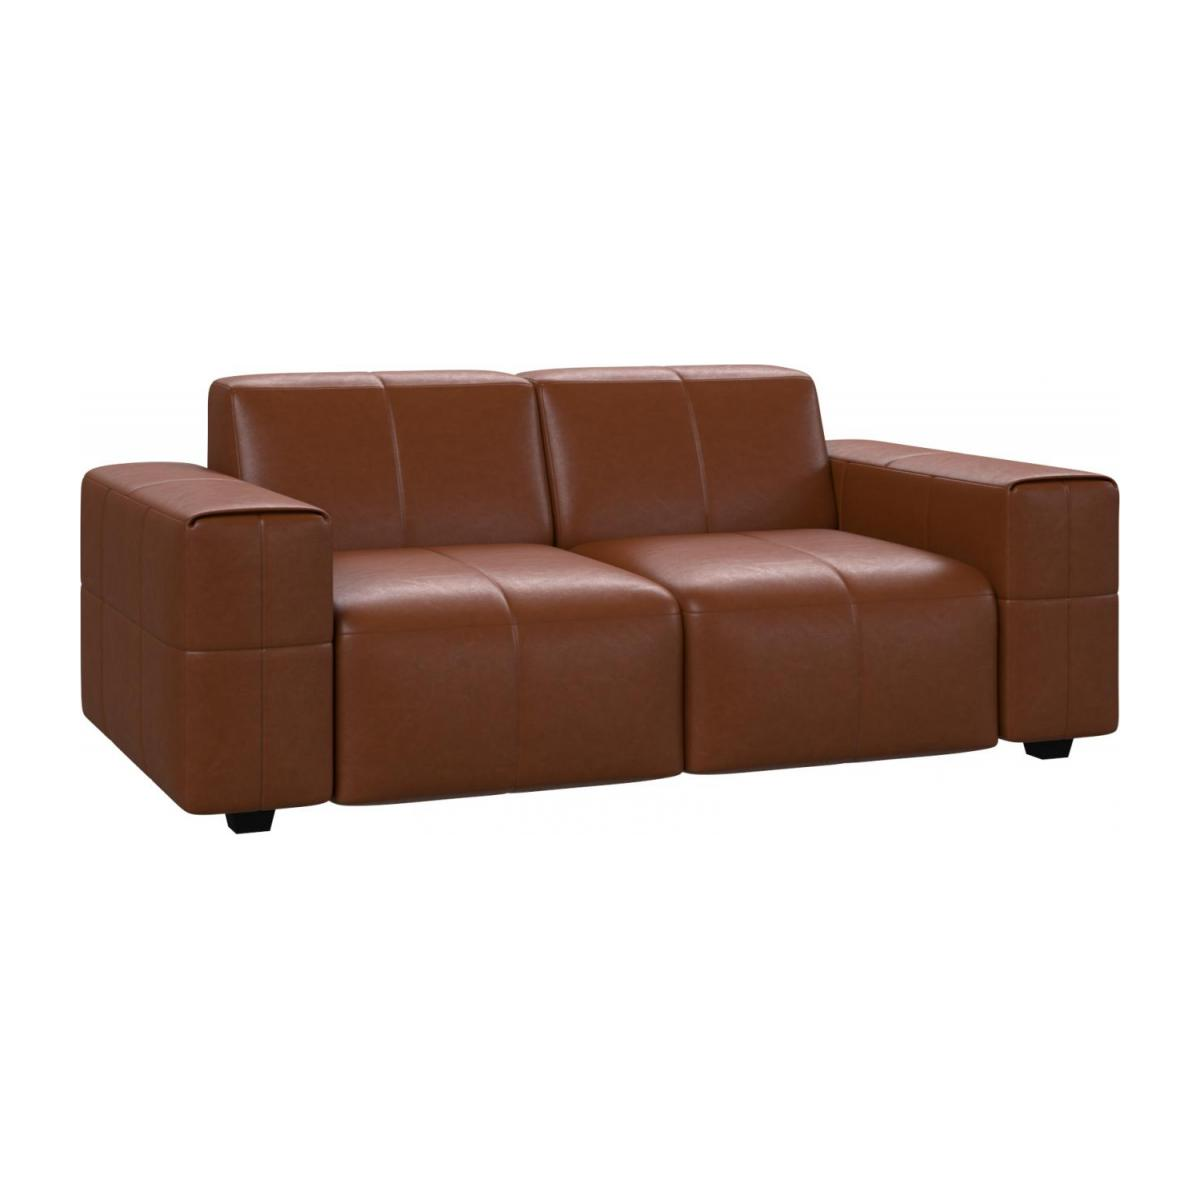 2 seater sofa in Vintage aniline leather, old chestnut n°1